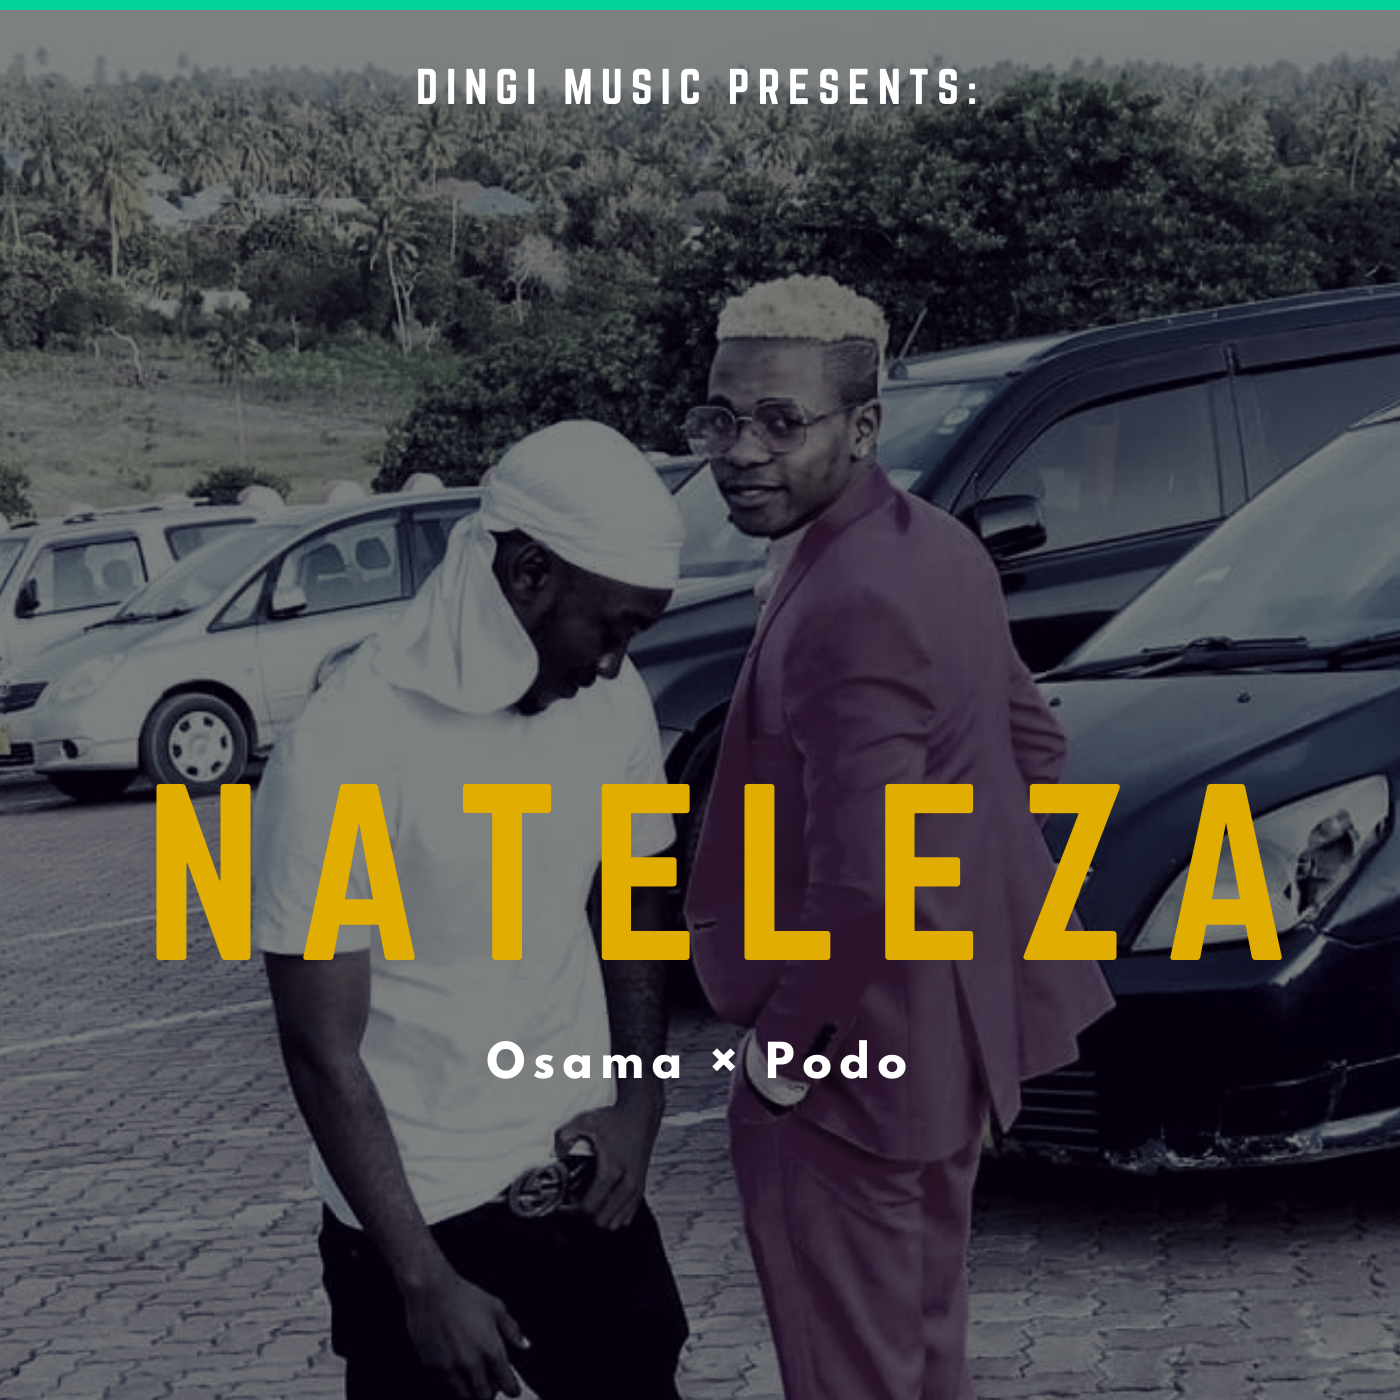 New Audio Osama Podo Nateleza Mp3 Download In 2020 New Hit Songs Audio Download